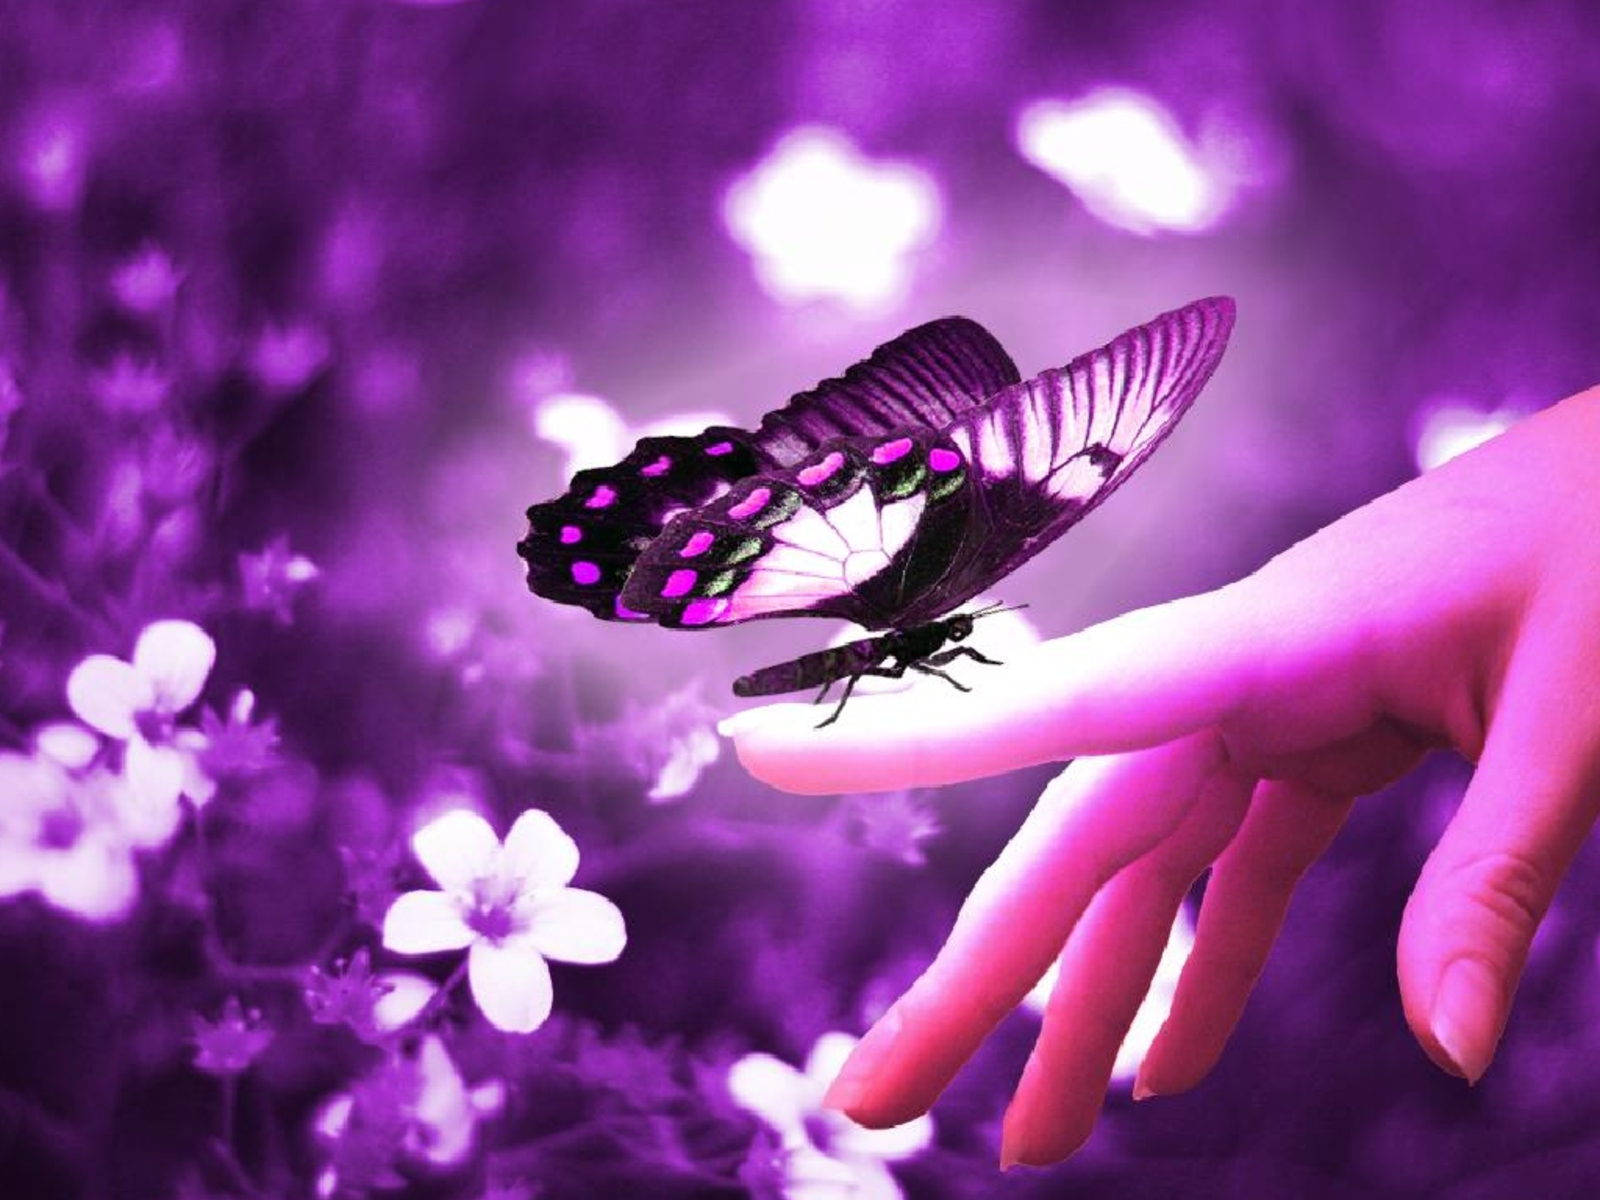 most beautiful flowers wallpapers butterflies - photo #30